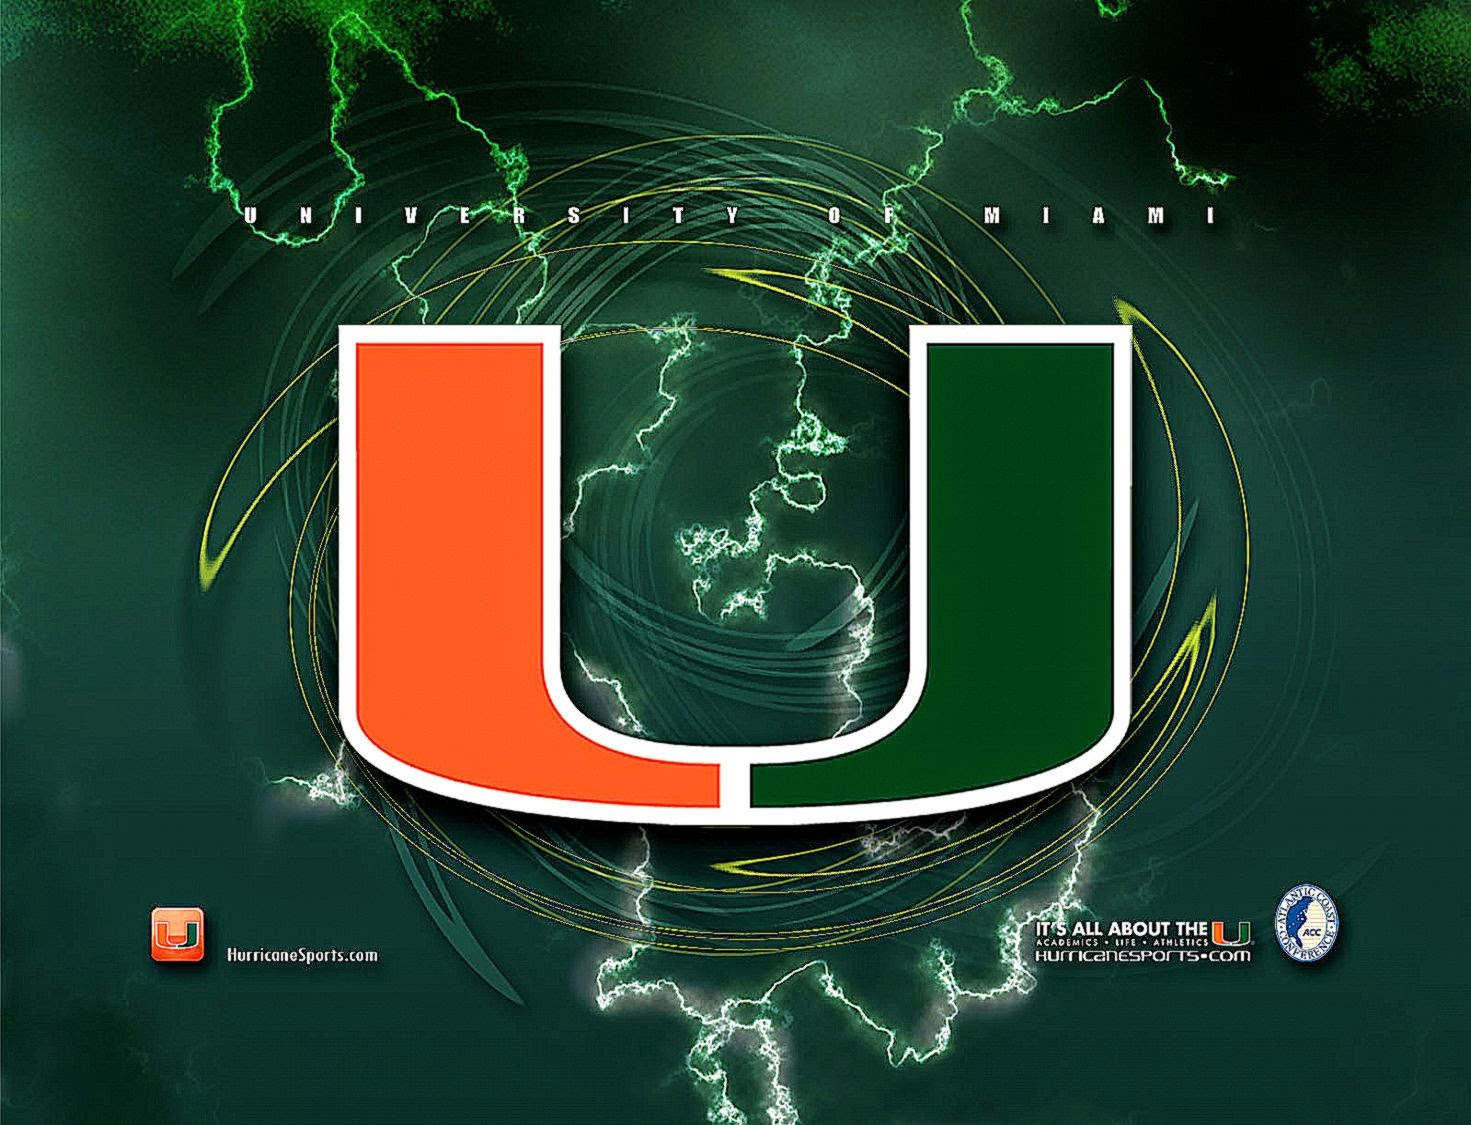 48 miami hurricanes wallpaper for android on wallpapersafari - University of miami wallpaper hd ...